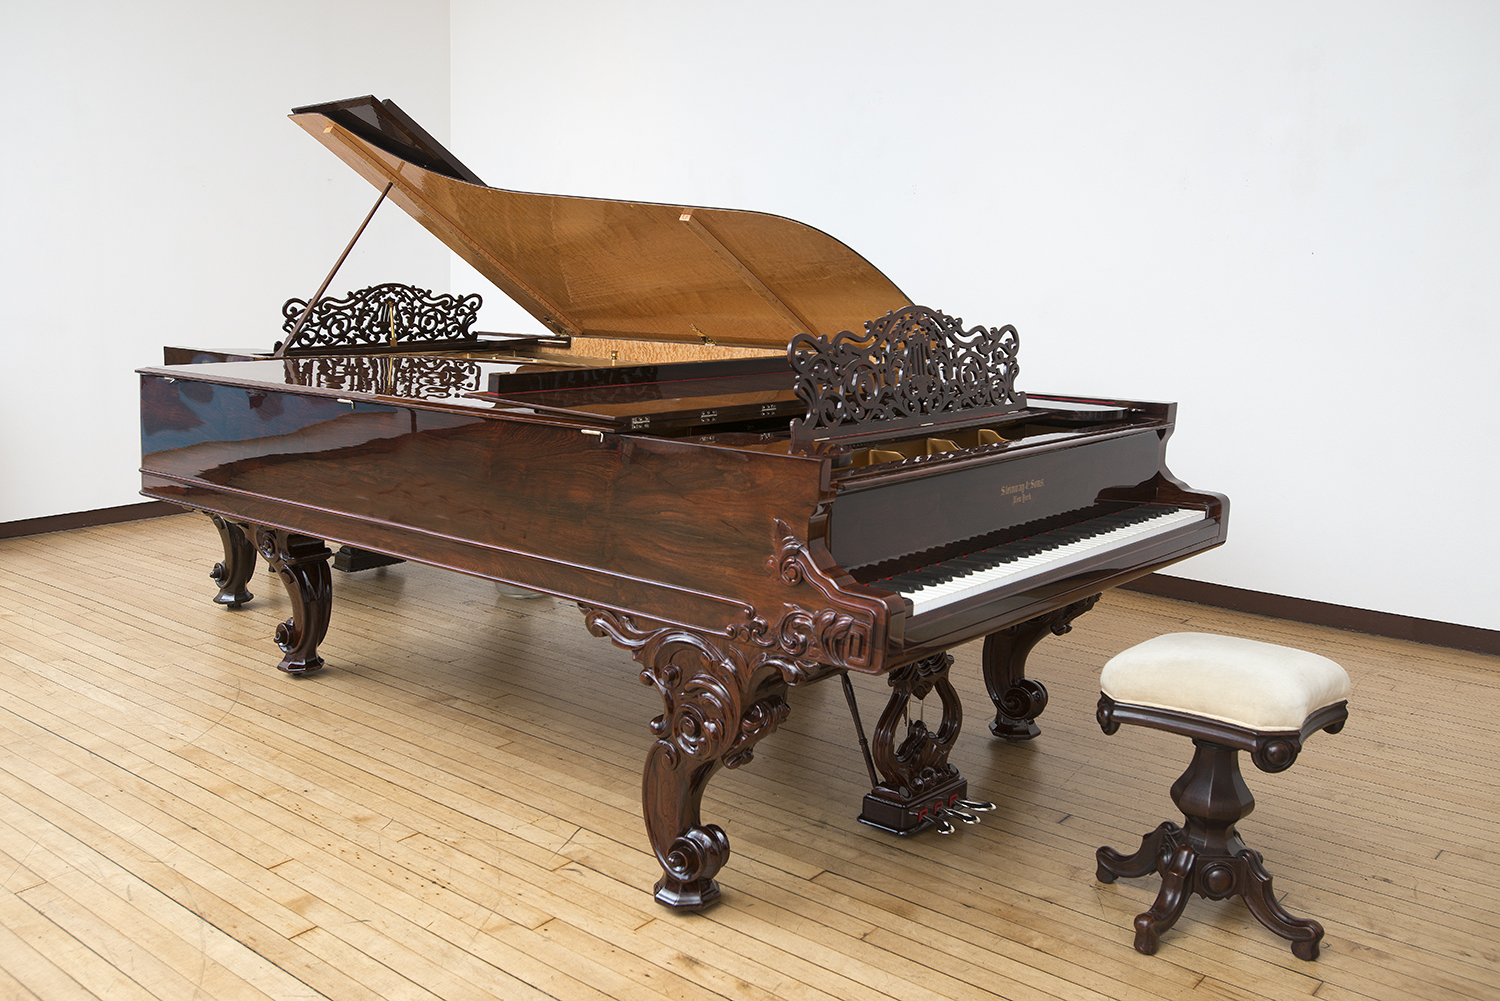 This Steinway Centennial Rosewood Concert Grand is owned by Louis K. Meisel and is located in the gallery for concert use.  This particular Steinway Centennial, serial number 34906, was built in March 1876 with the Steinway foundry casting date of March 5, 1876 on the plate and a workman's signature on the side of key 88 dated Marz '76. The instrument has an extra heavy plate and the extra third section capo d'astro bar made under C.F. Theodore Steinway's supervision early in 1876. It became known as the Centennial after being exhibited at the Centennial Exposition in Philadelphia and winning the gold medal.  This instrument comes with the original purchase document and was acquired by the present owner from the great-grandson of the original owner. The instrument has the original ebony sharps and flawless, very thick (1/16 inch) one piece ivories. The original action is meticulously restored with 20 pound hammers, made by Norbert Abel. The Centennial is the first fully modern piano with string tensions greater than the current mass-produced Concert Grand that initially went into production after 1877. Its fundamental sustainability and power, through all registers, is unsurpassed.  In his authoritative book, Pianos and Their Makers, Alfred Dolge discusses the Steinway Centennial Rosewood Concert Grand. He points out how Theodore Steinway through his friendship with Helmholtz and other scientists was inspired by their research to make the breakthrough design which lead to this innovative piano.